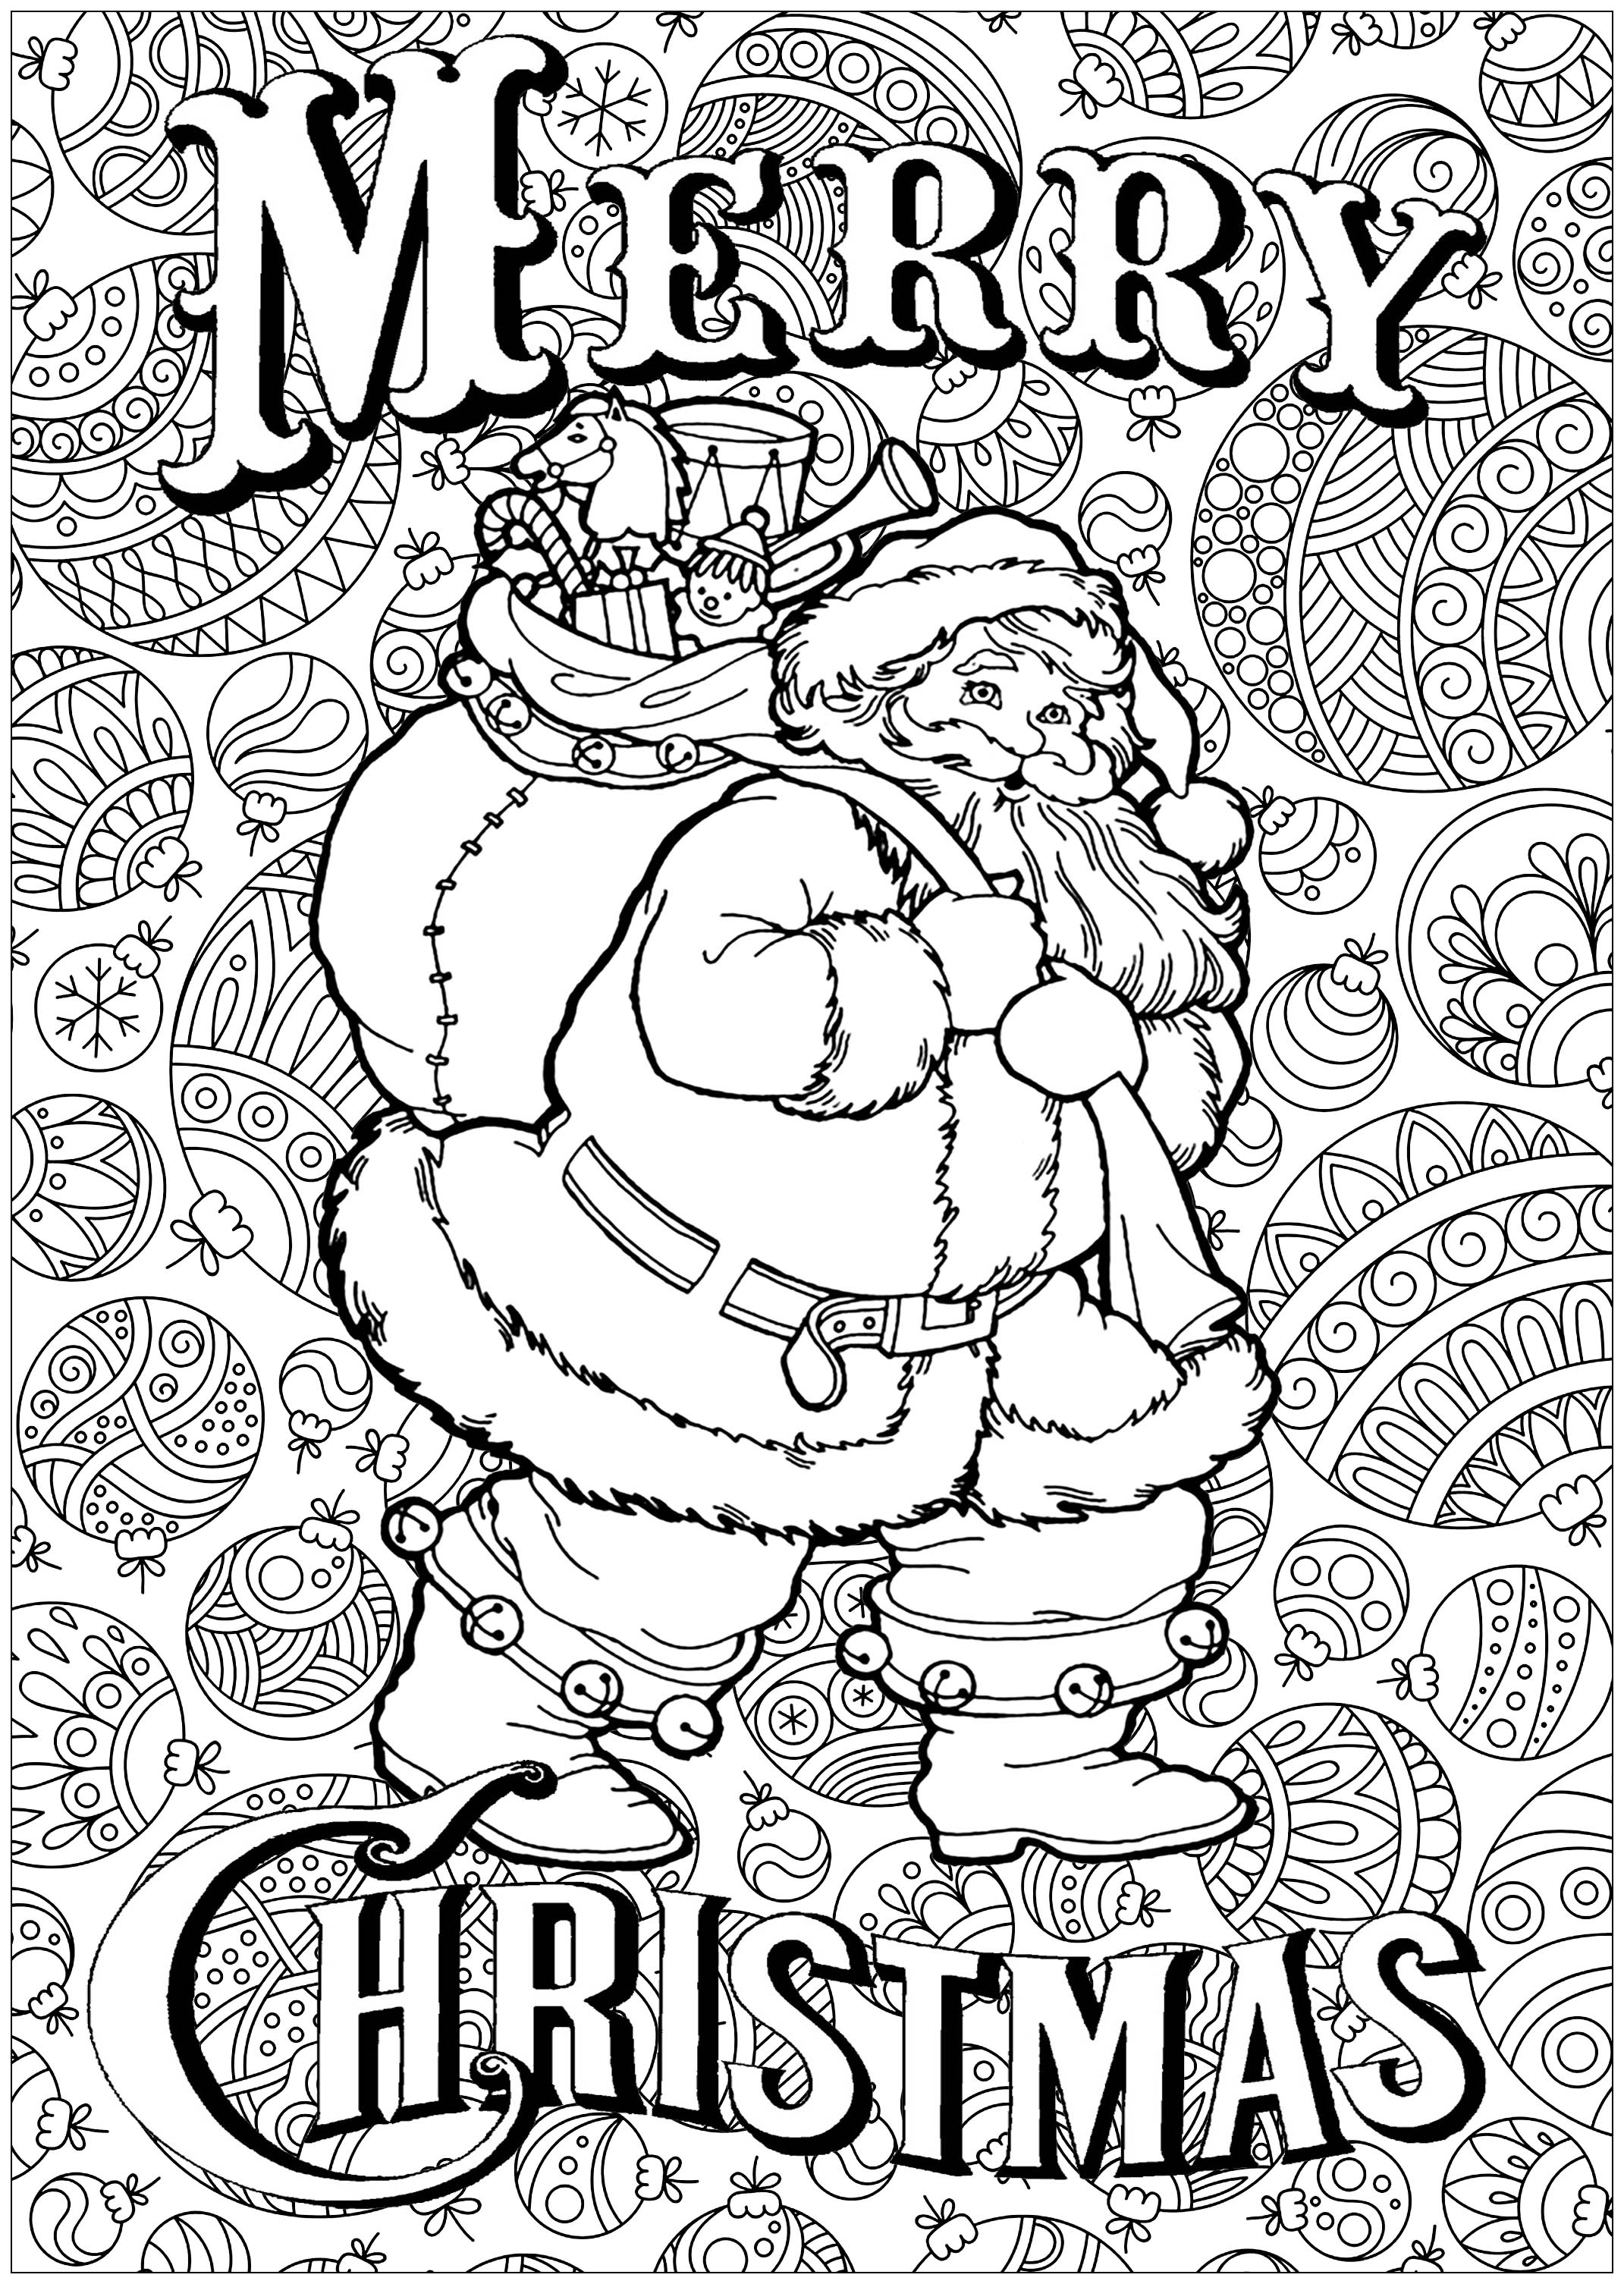 Christmas Coloring Pages For Grown Ups With Free To Print Adults Printable